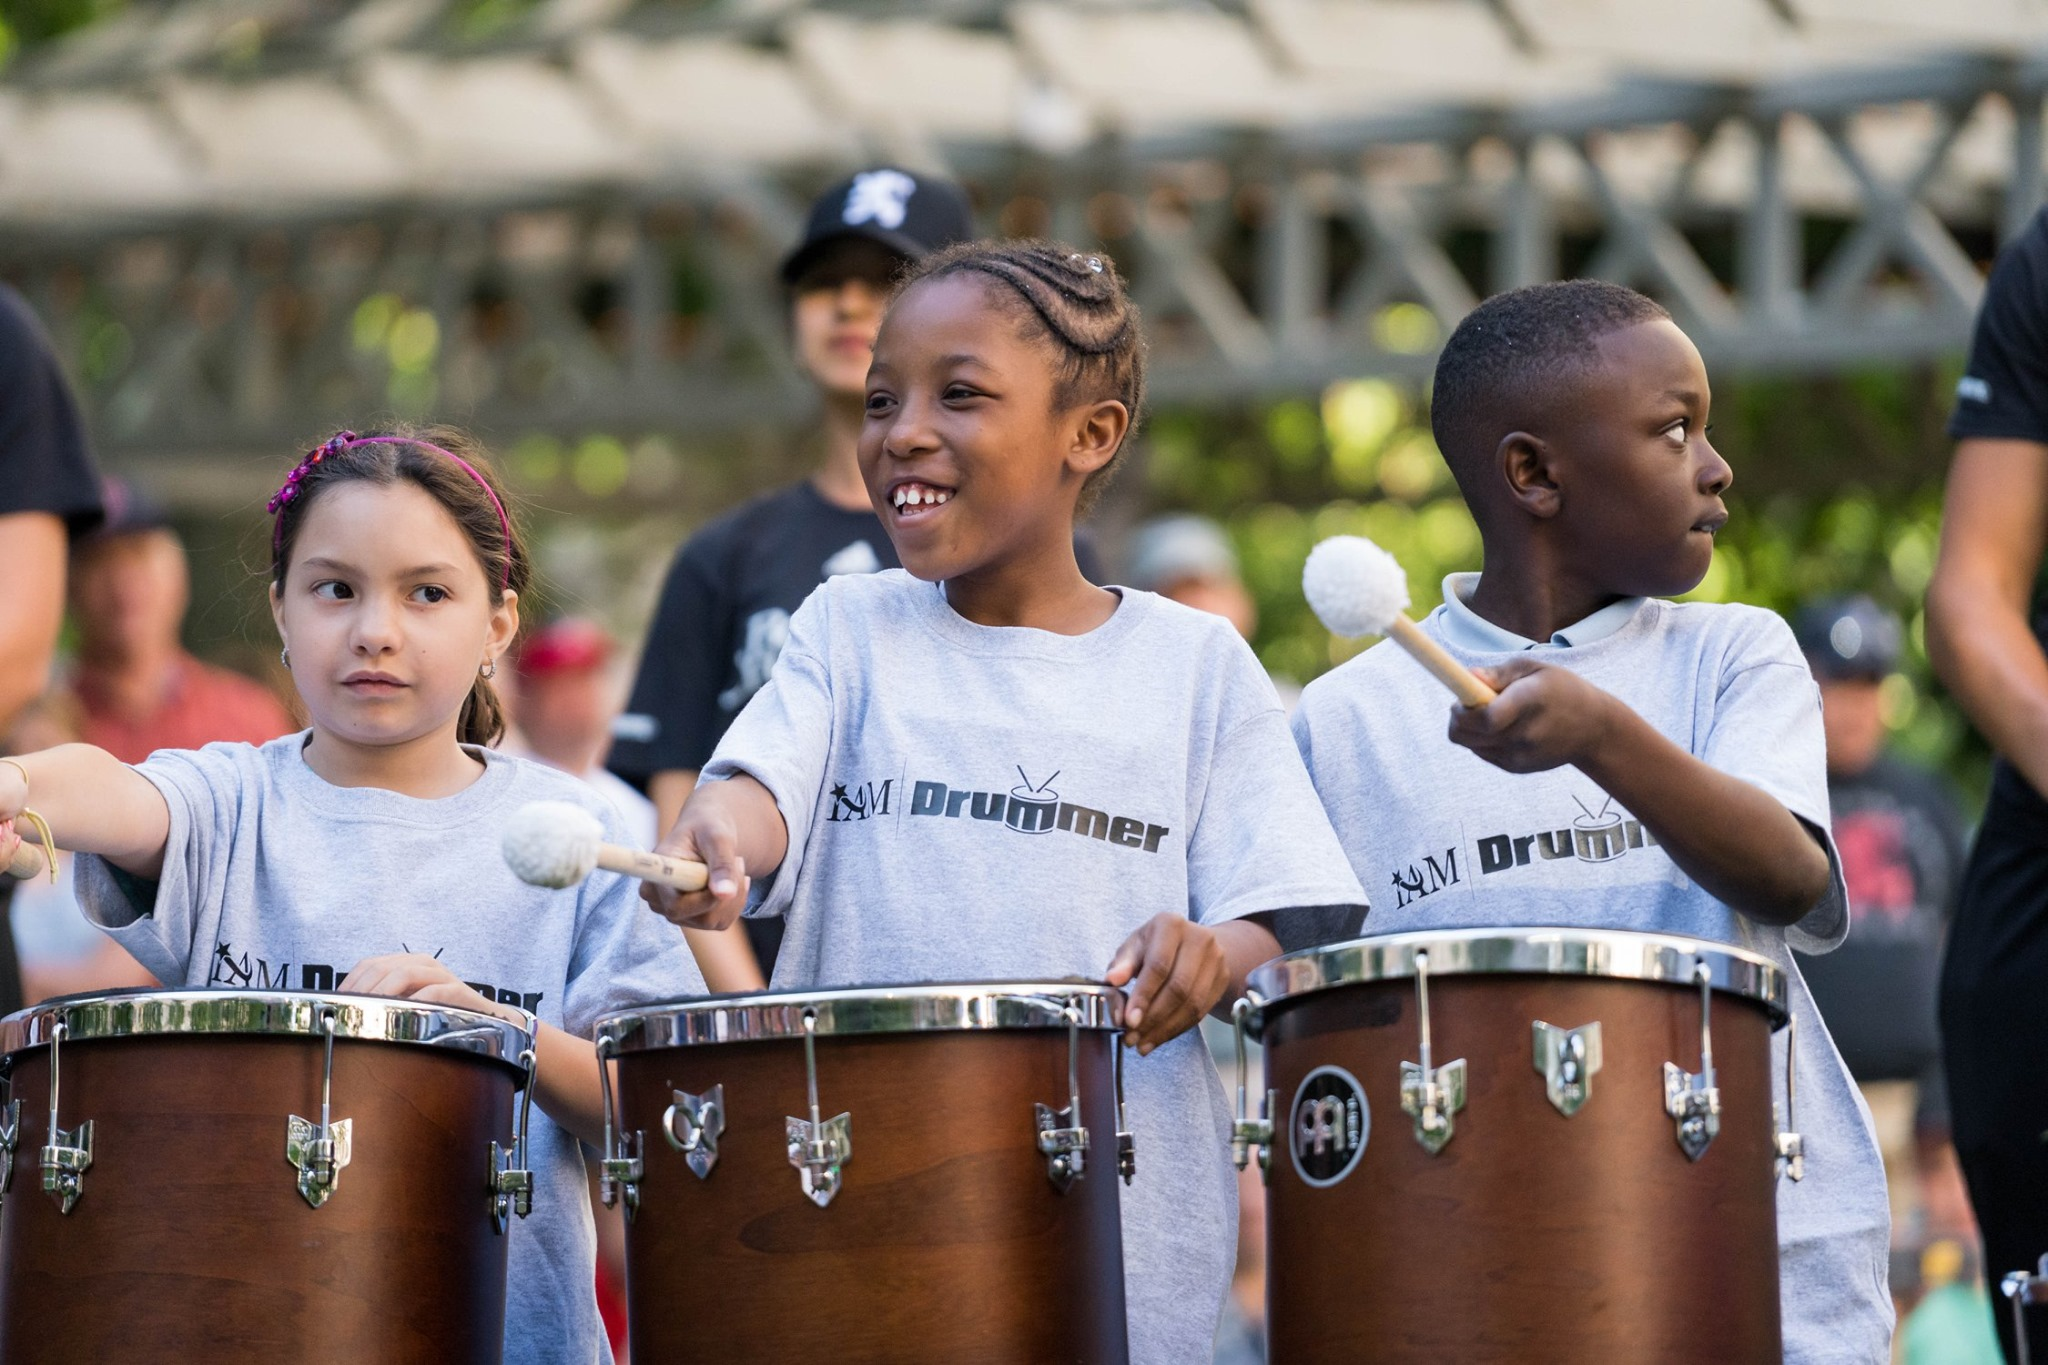 Performers from our Urban Programs at Concert in the Park 2019